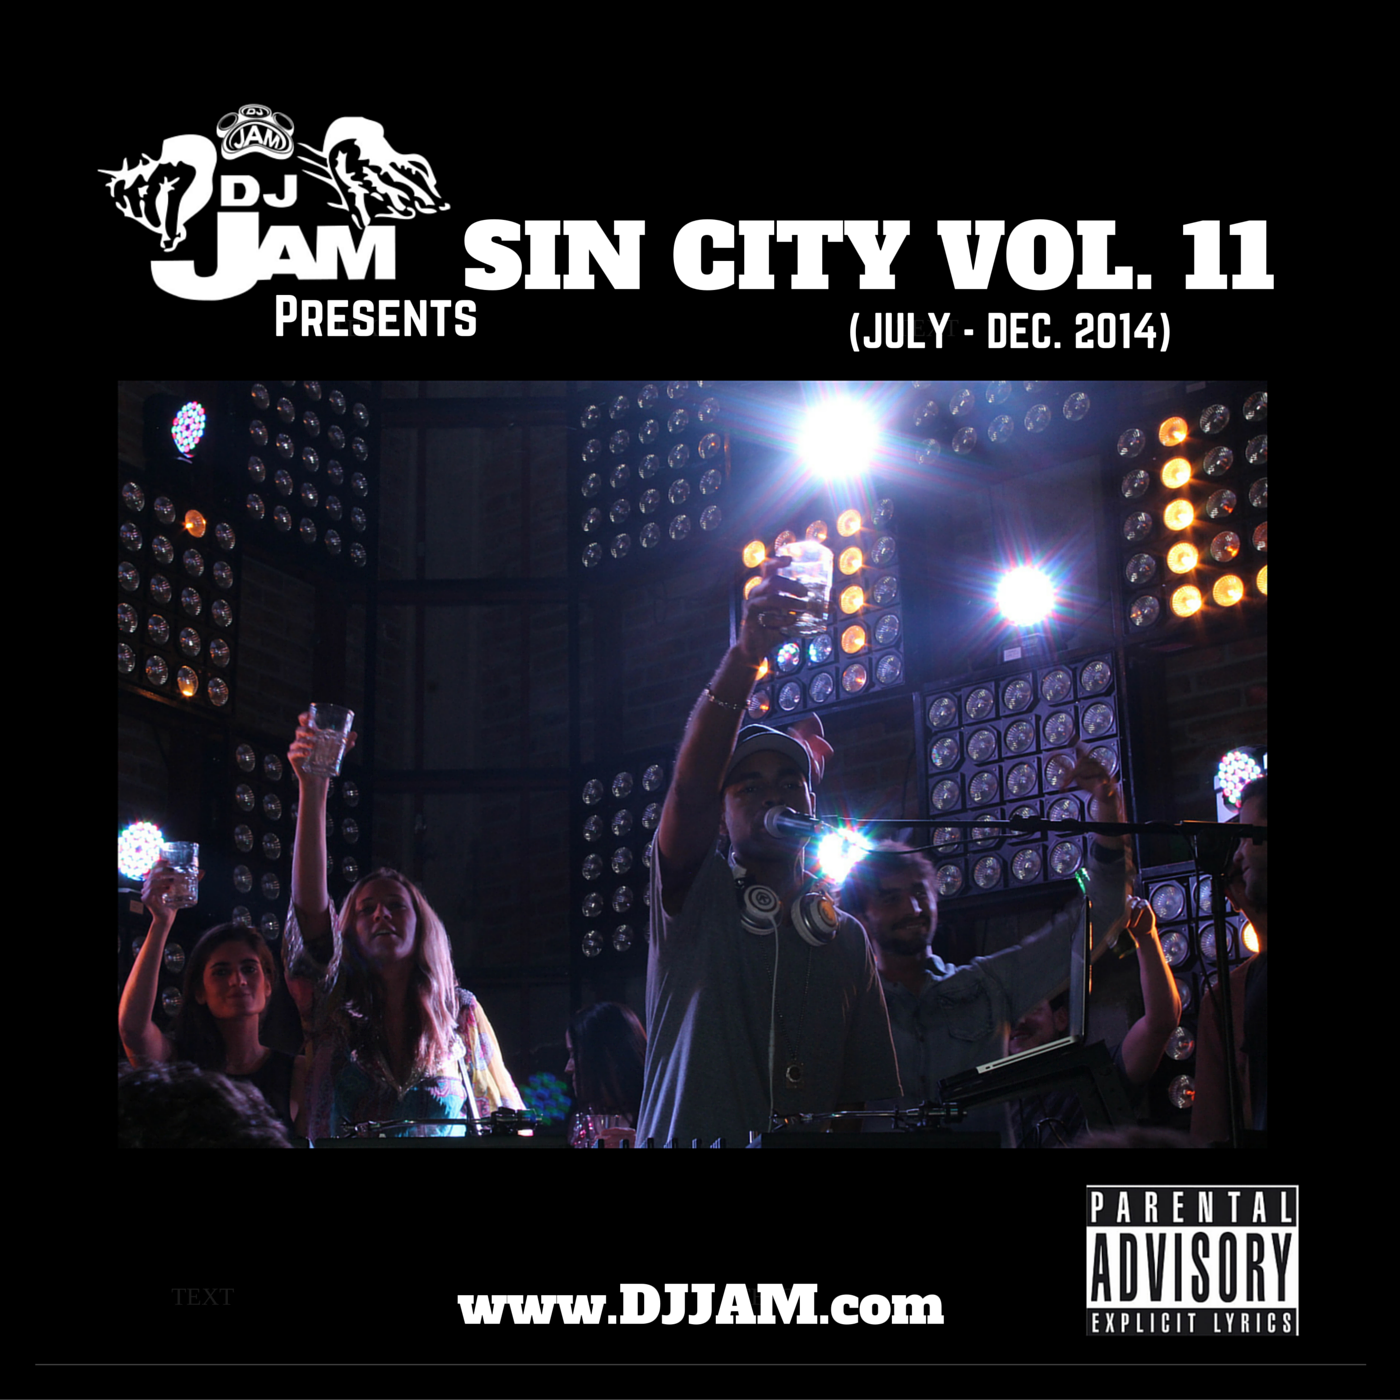 """New Music For The Holidays, DJ Jam Presents """"Sin City"""" Vol.11 - Listen Now!!! #DJVATICAN"""